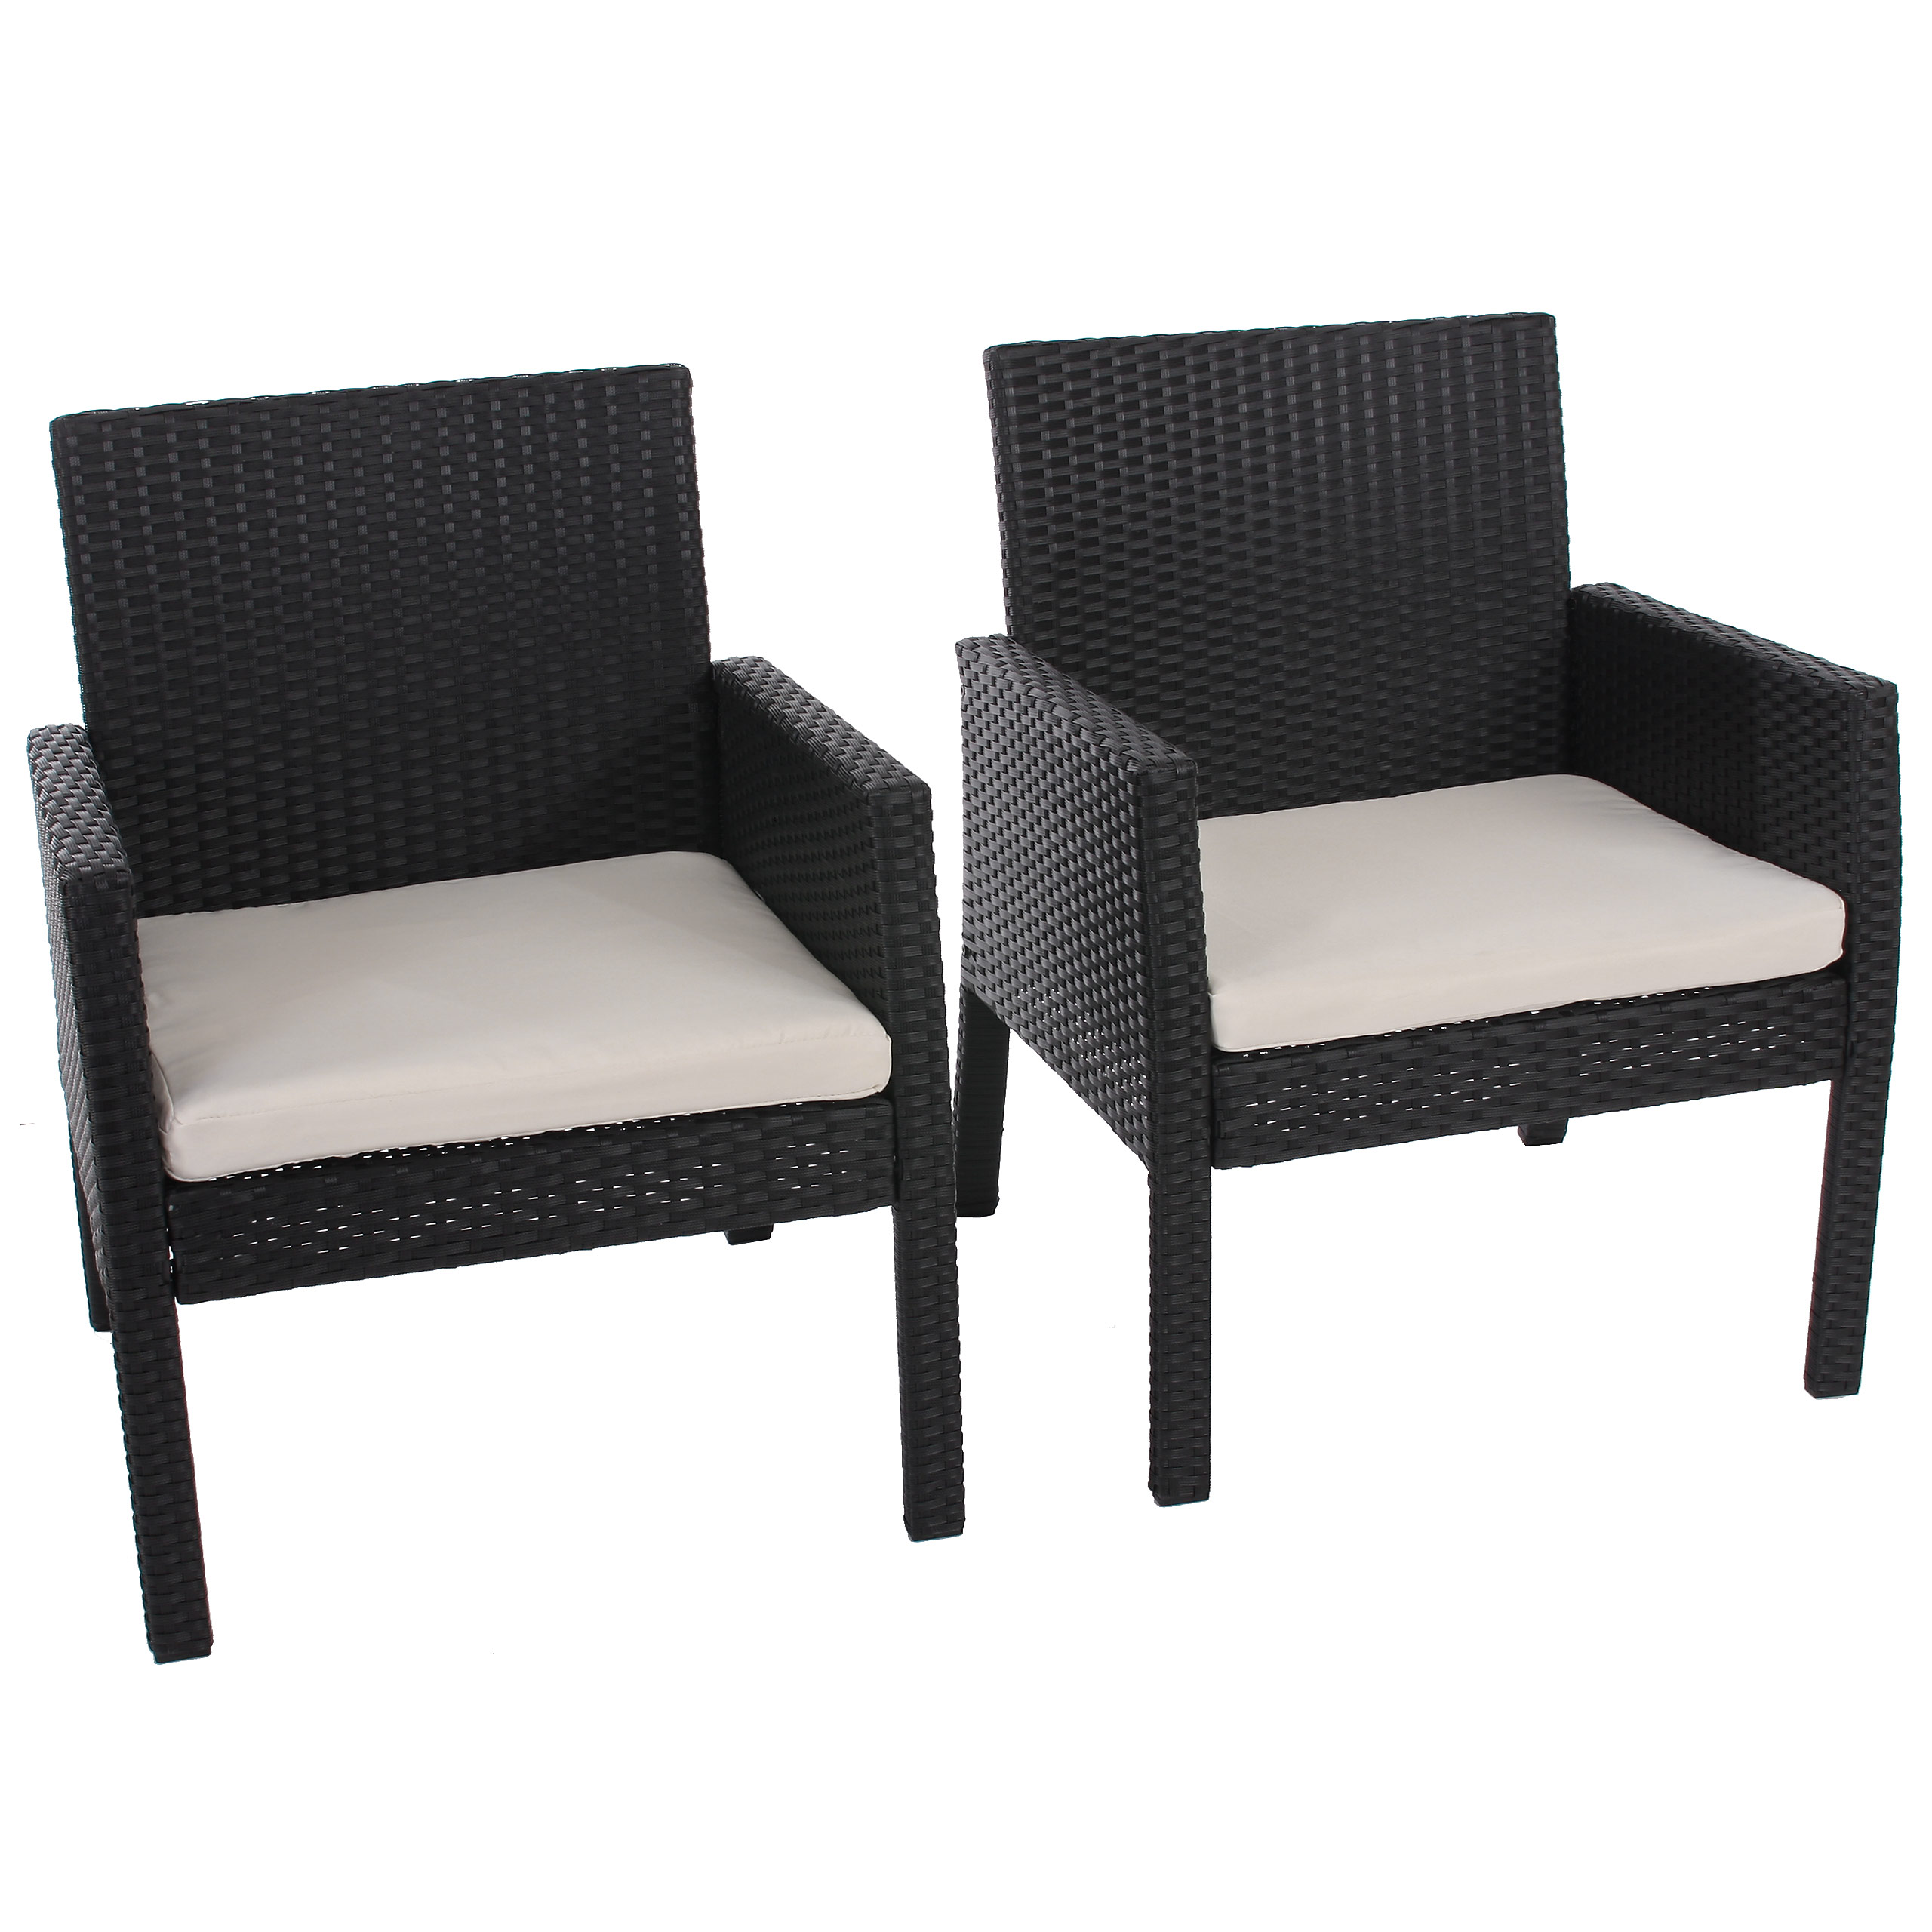 2x poly rattan sessel gartensessel sanremo inkl. Black Bedroom Furniture Sets. Home Design Ideas